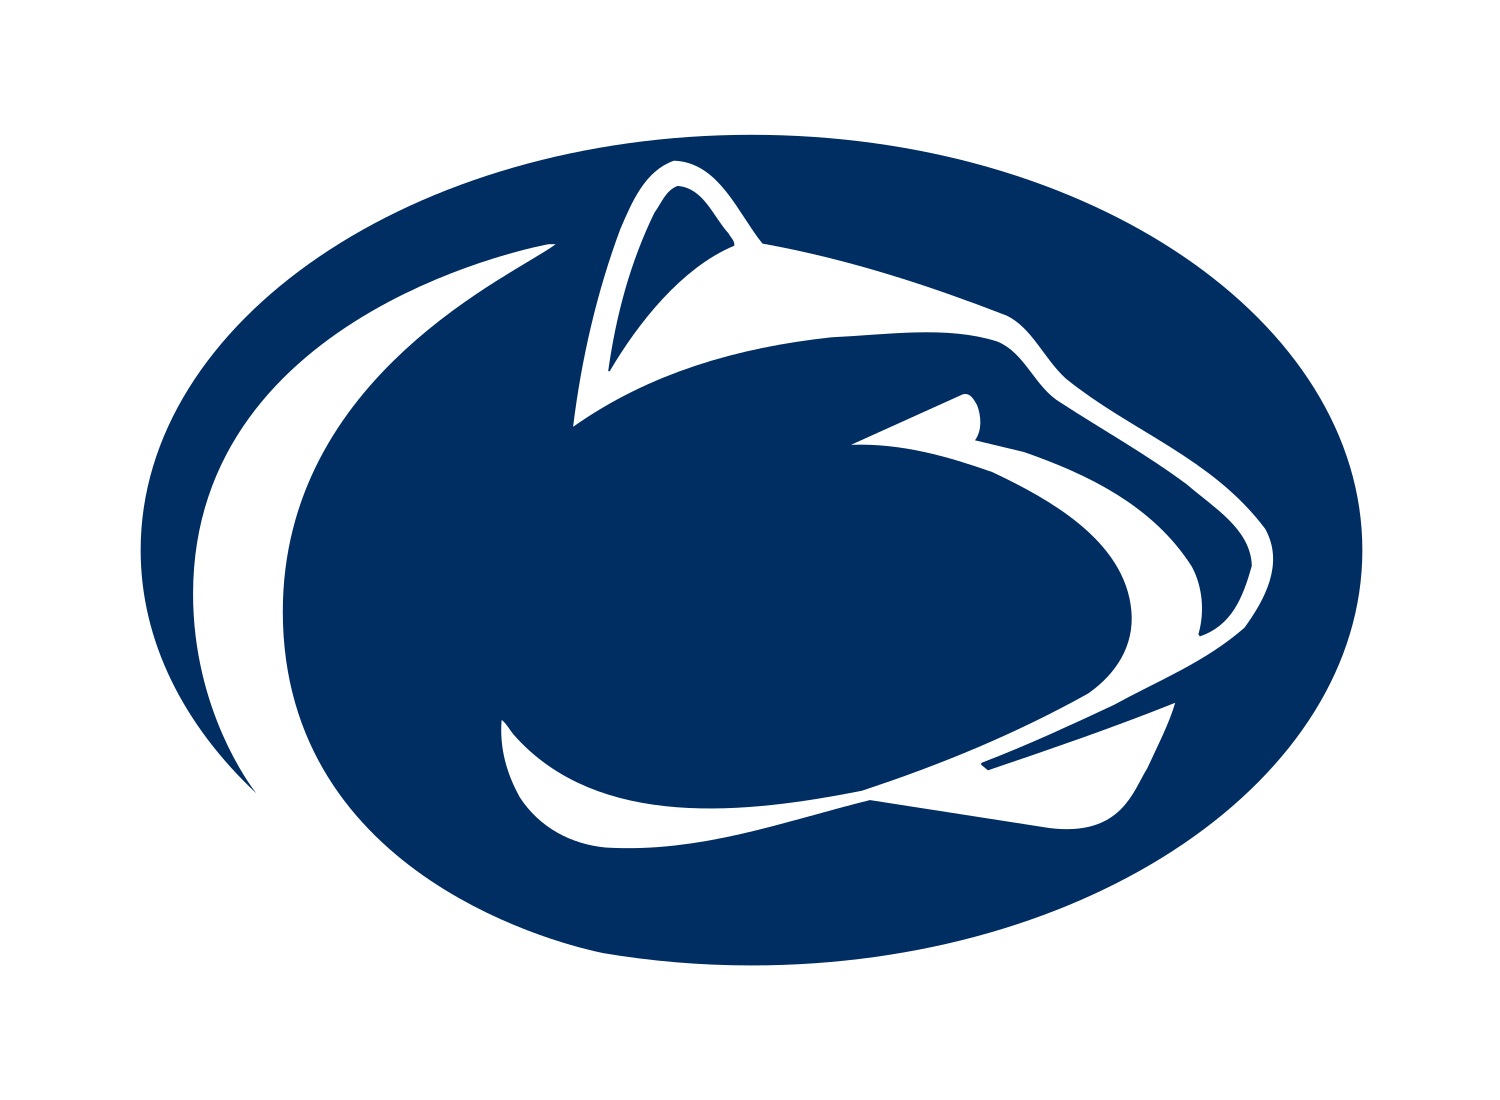 Penn state logo penn state symbol meaning history and evolution pennsylvania state university has two main logotypes an athletic logo that belongs to nittany lions program and the institutional logo shield logo buycottarizona Image collections